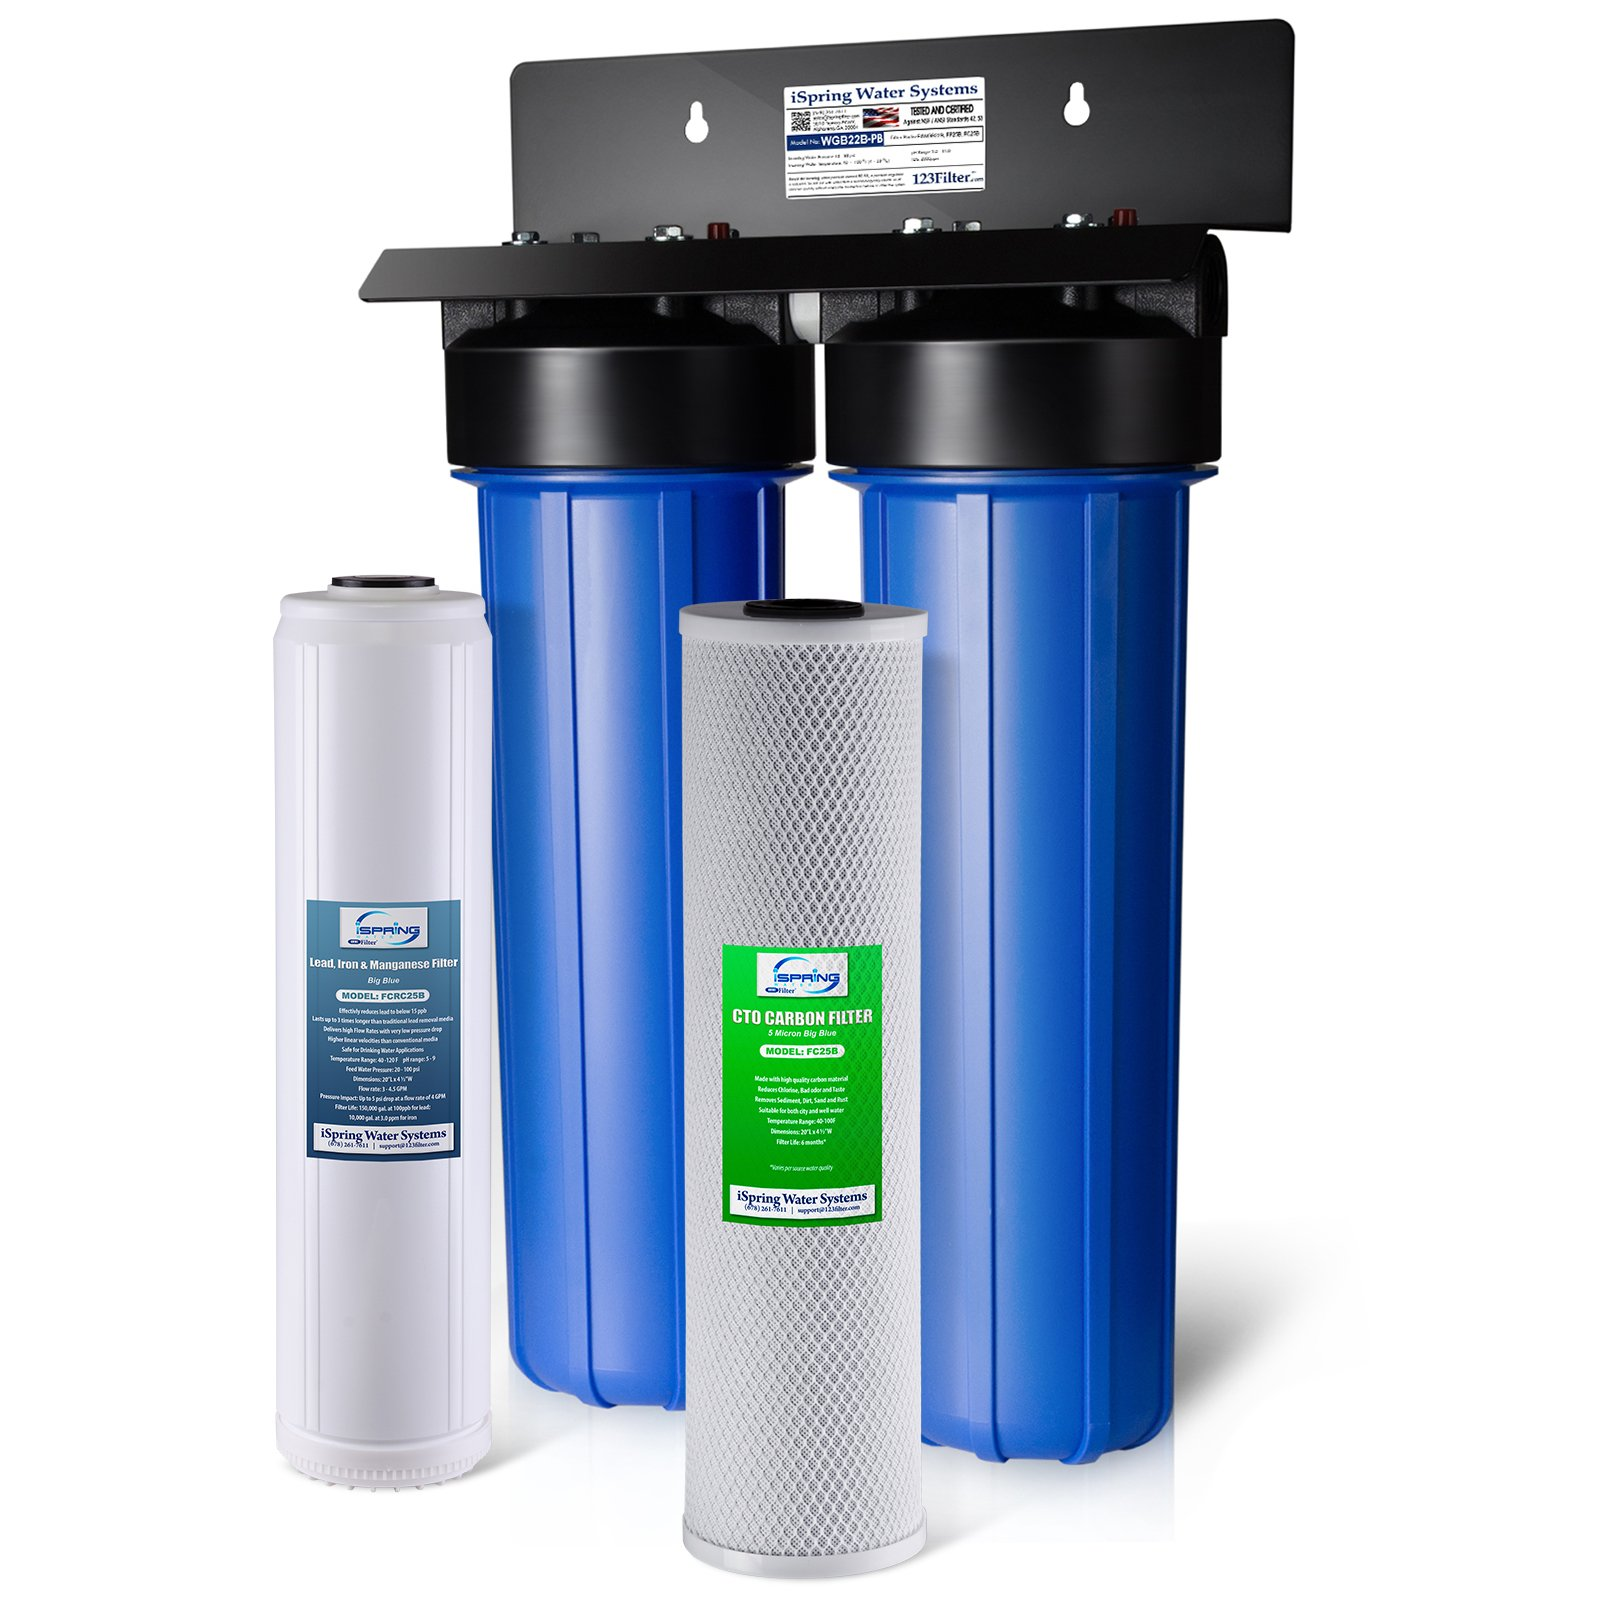 iSpring WGB22B-PB 2-Stage Whole House Water Filtration System w/ 20-Inch Carbon Block and Iron & Lead Reducing Filter by iSpring